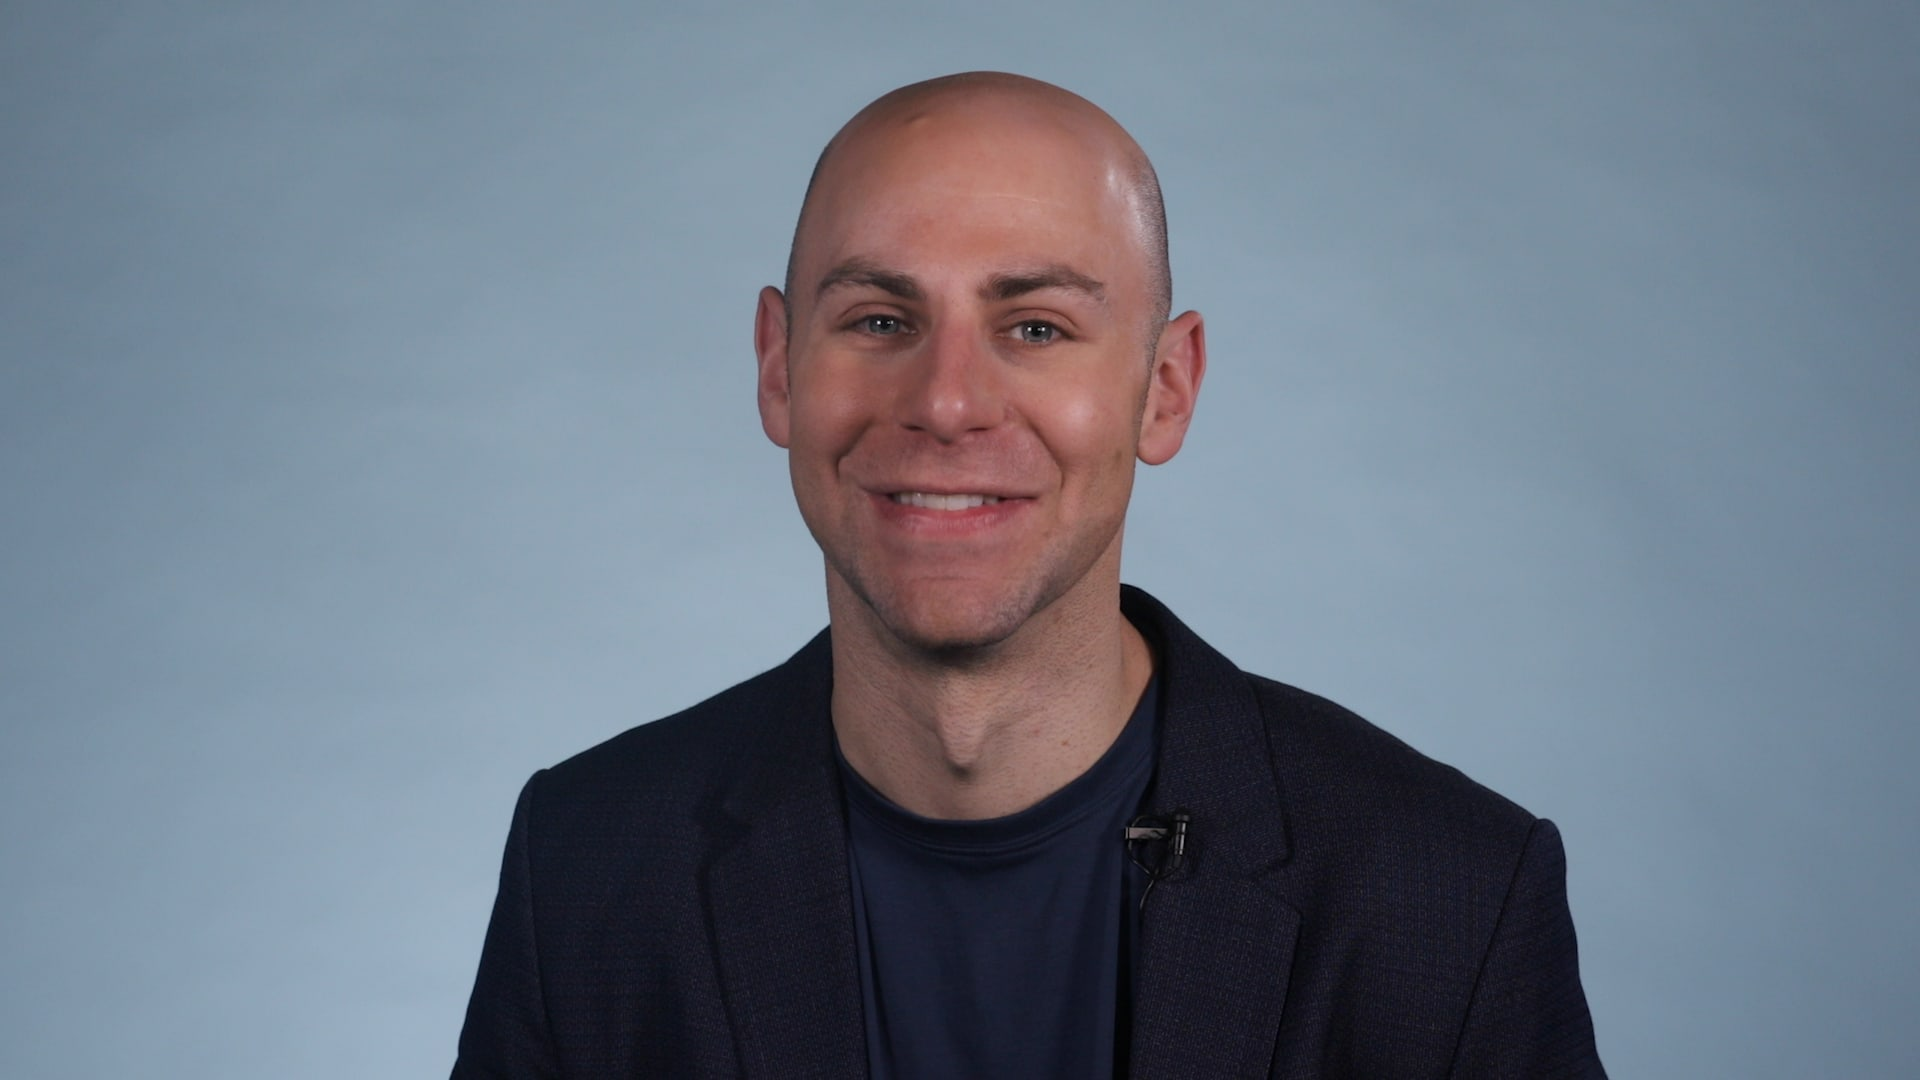 Top Wharton prof. Adam Grant: Time management doesn't help productivity — here's what to do instead